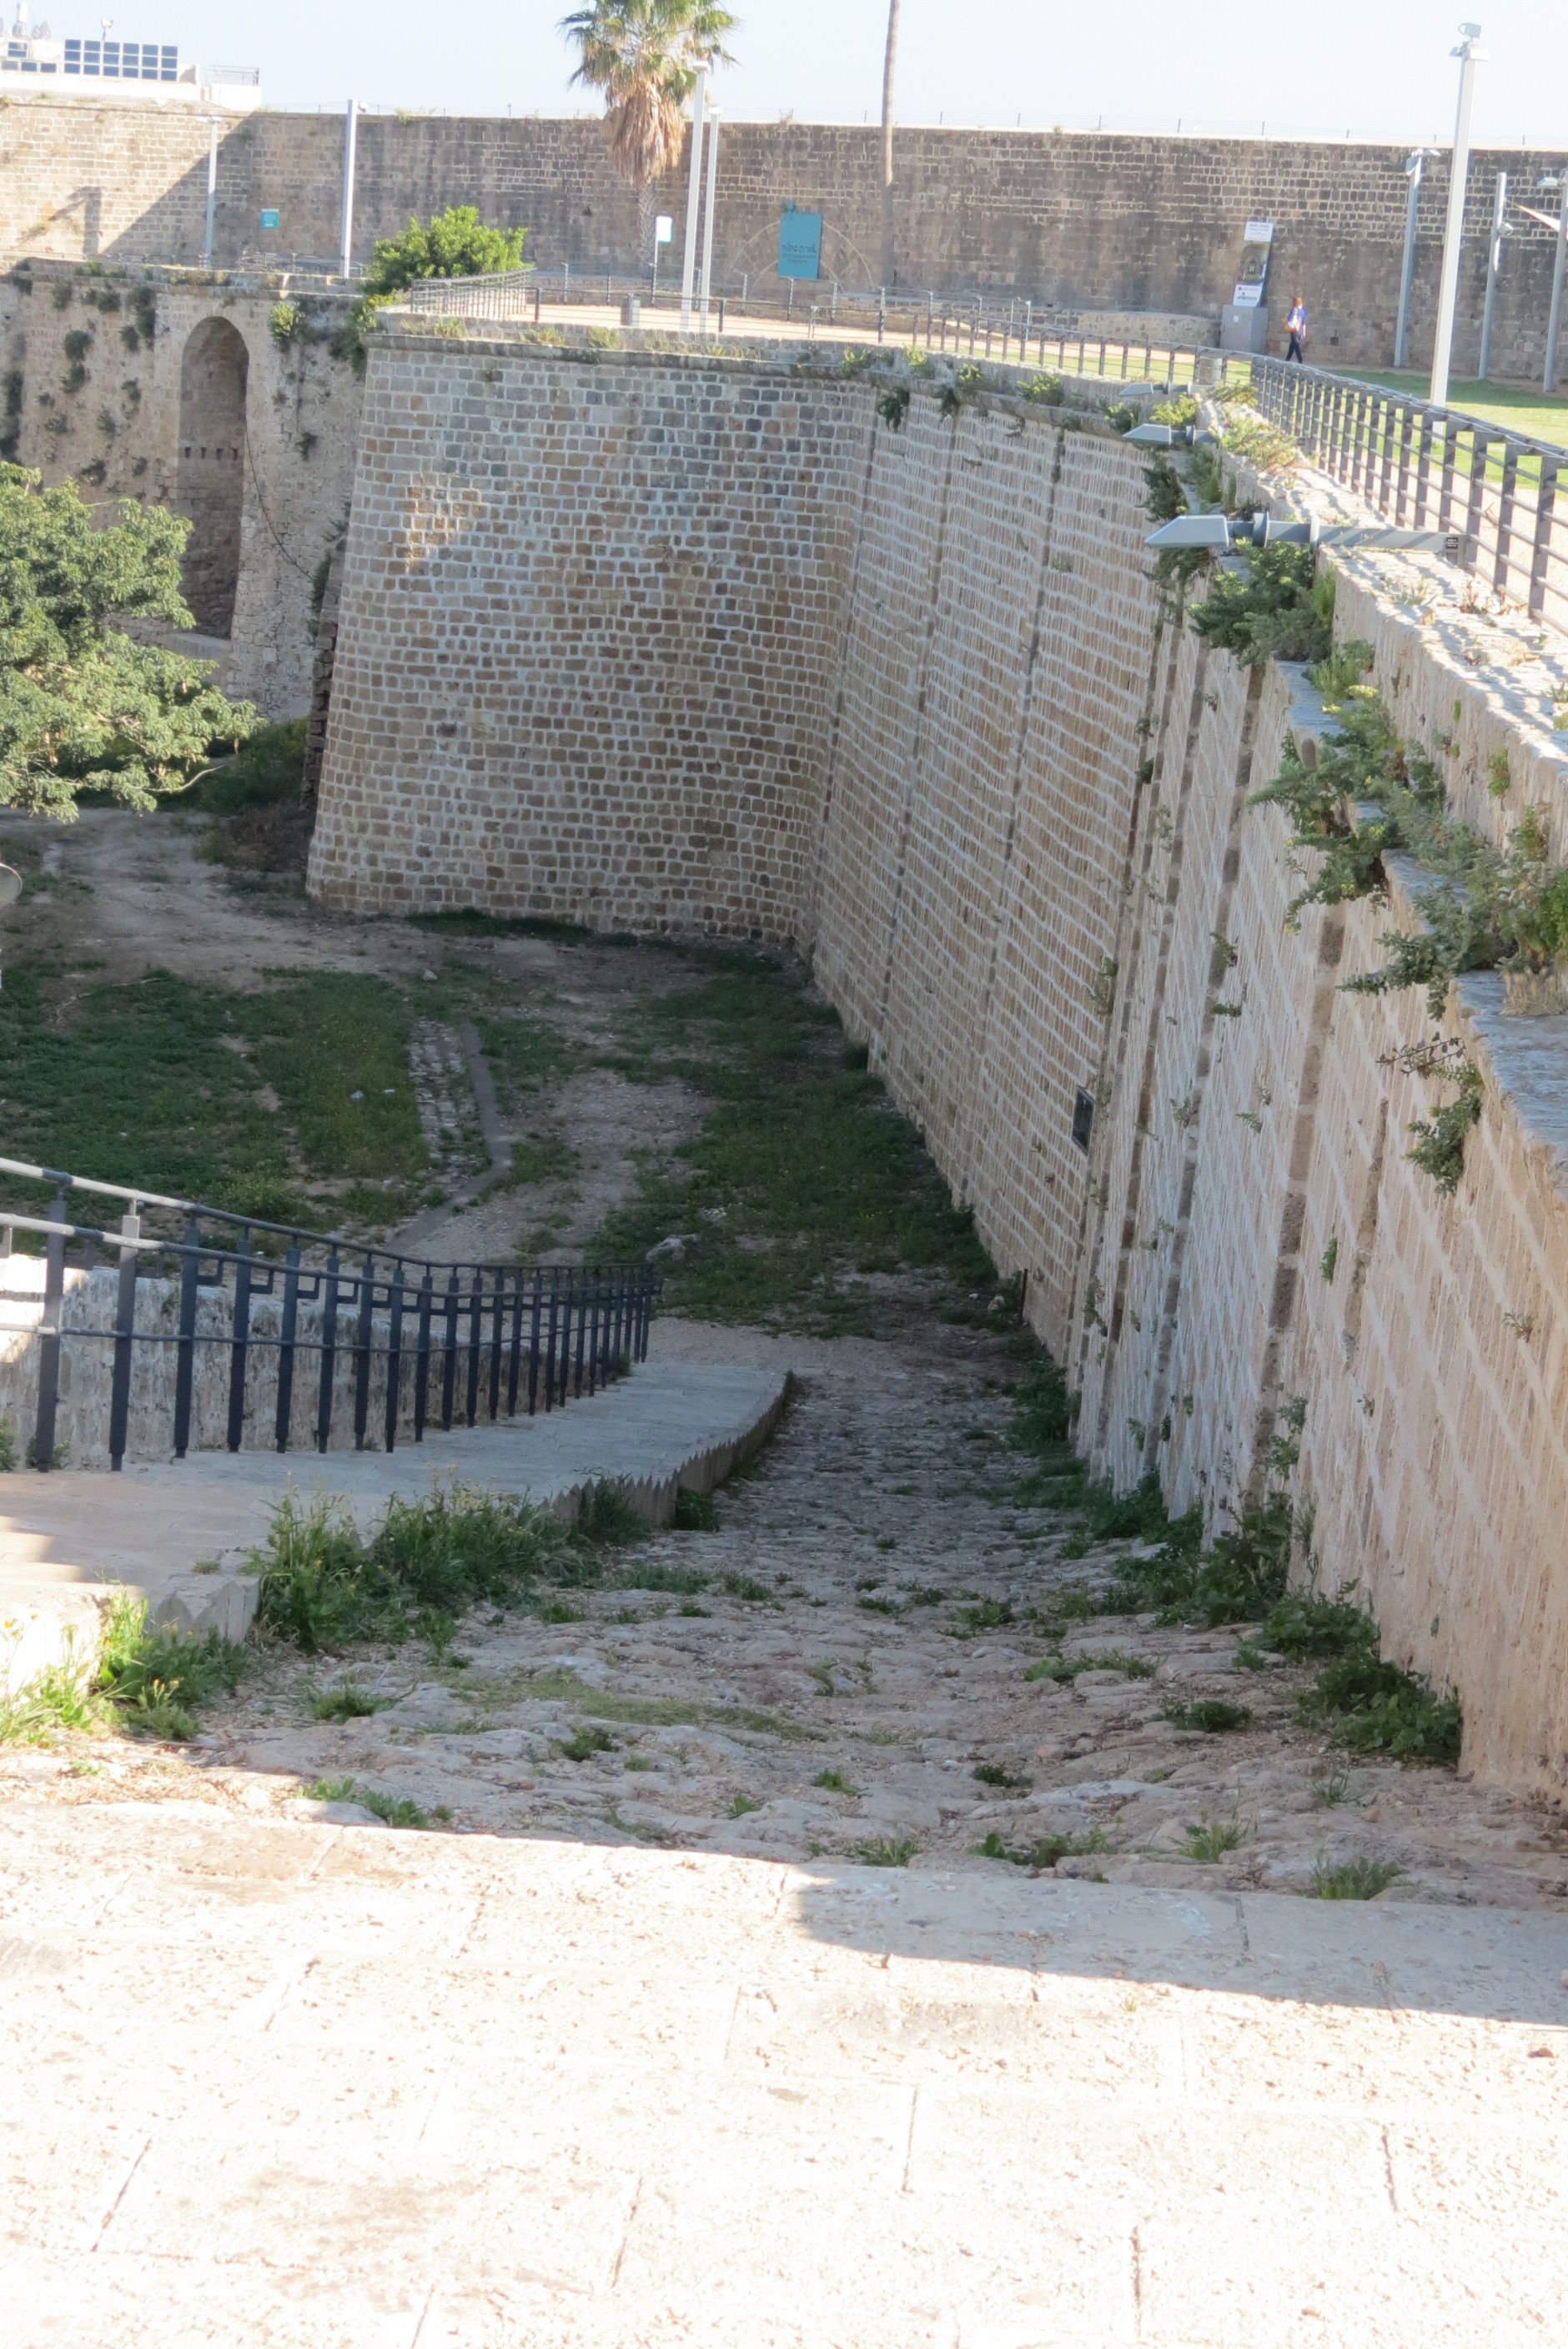 Walls of Acco